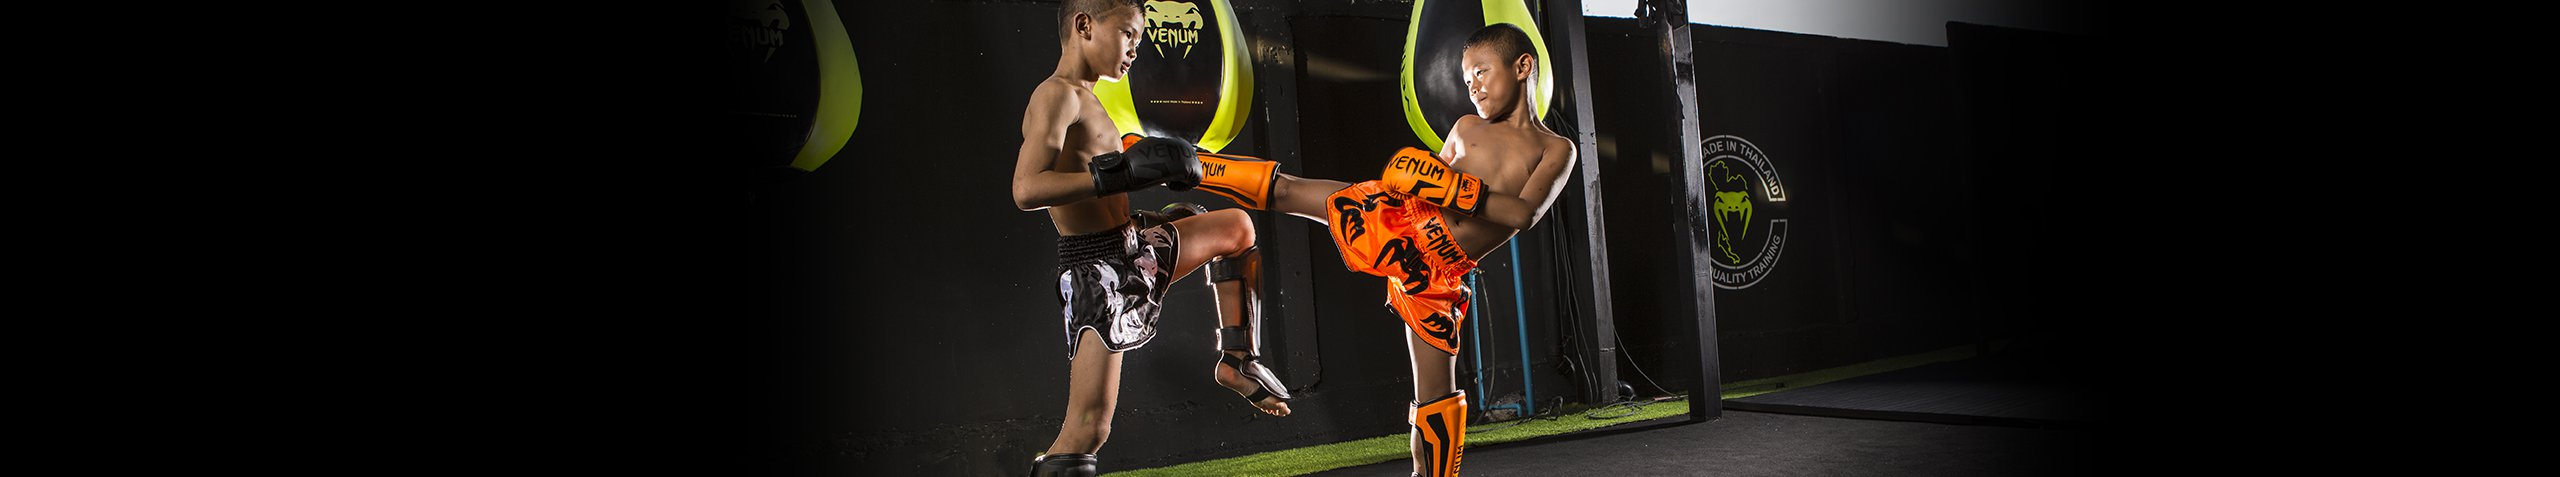 Venum Boxing Gear for Kids - Venum.com Europe